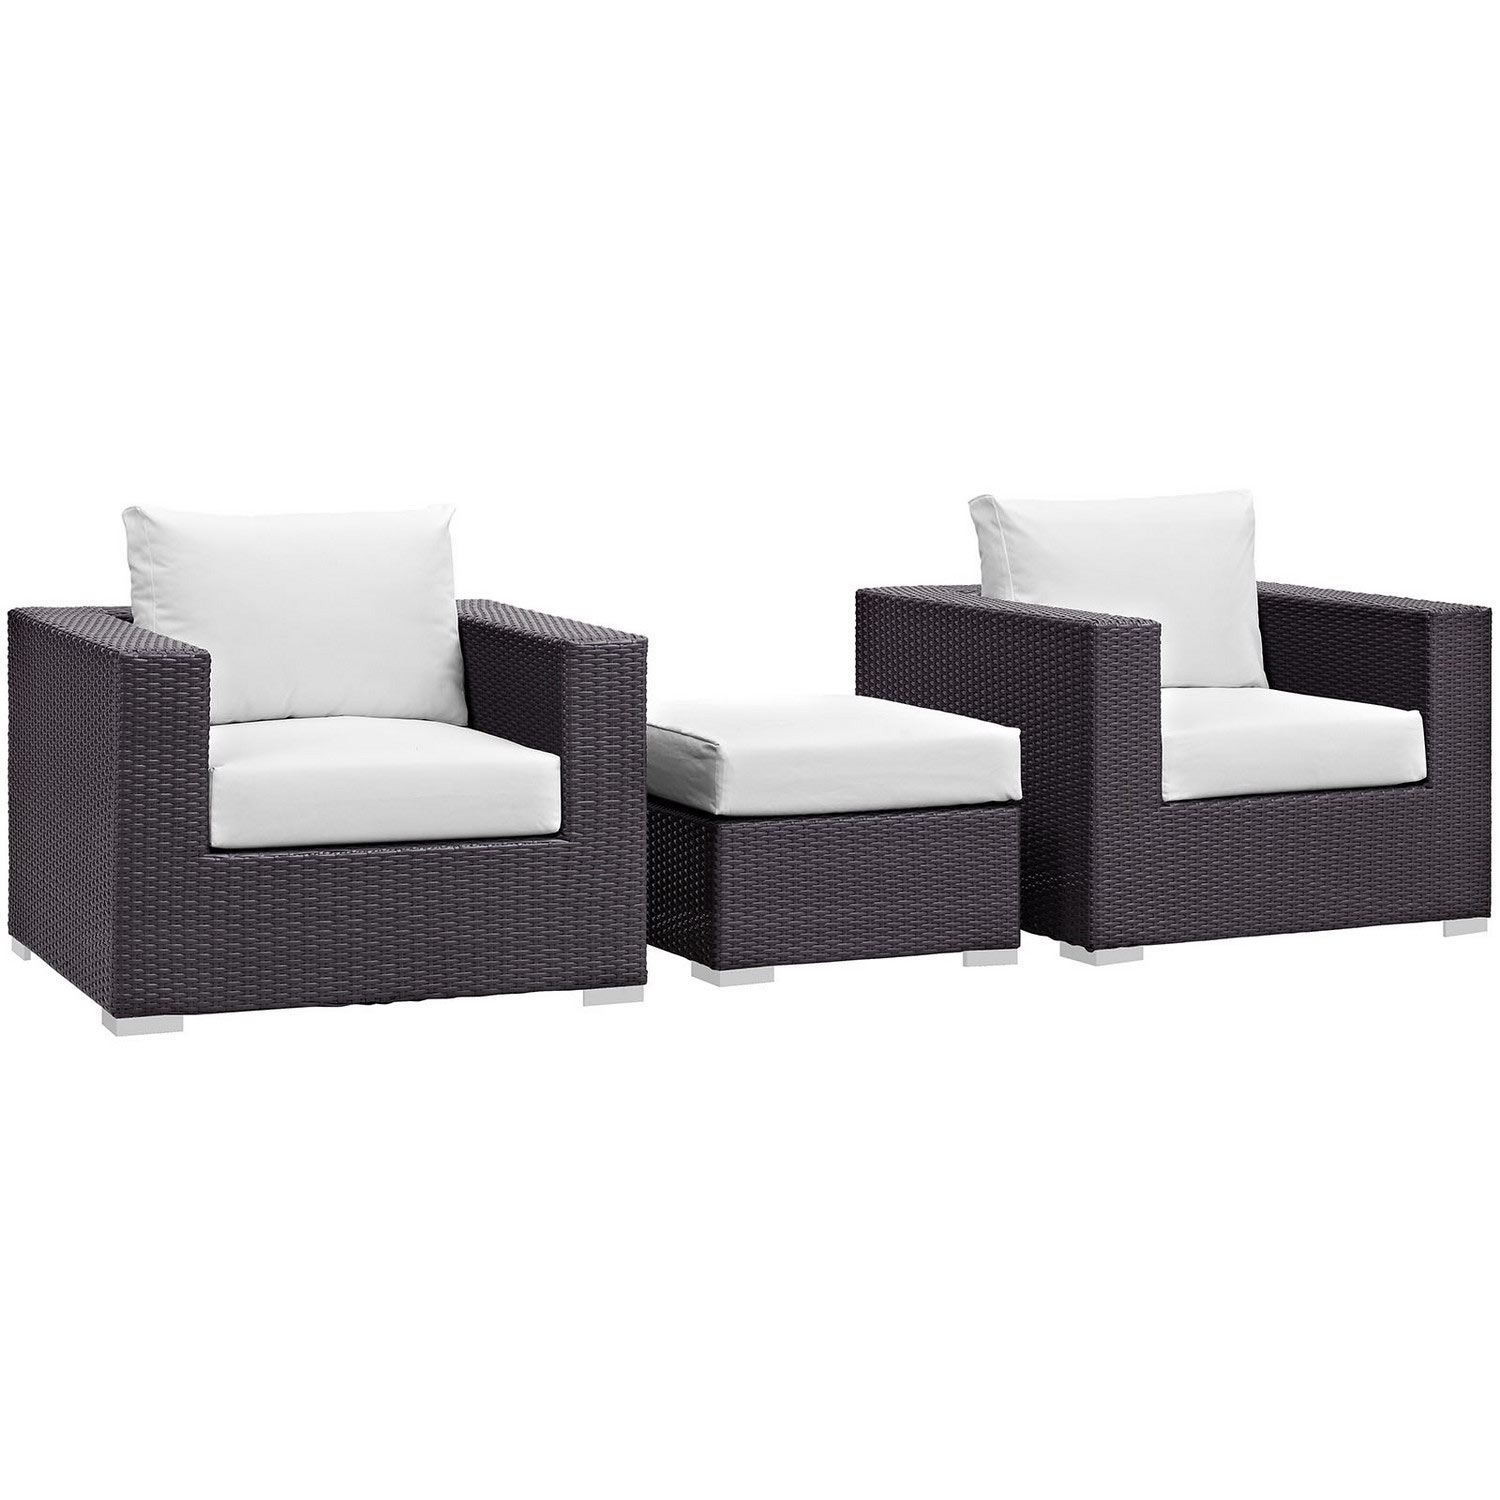 Modway Convene 3 Piece Outdoor Patio Sofa Set - Espresso White